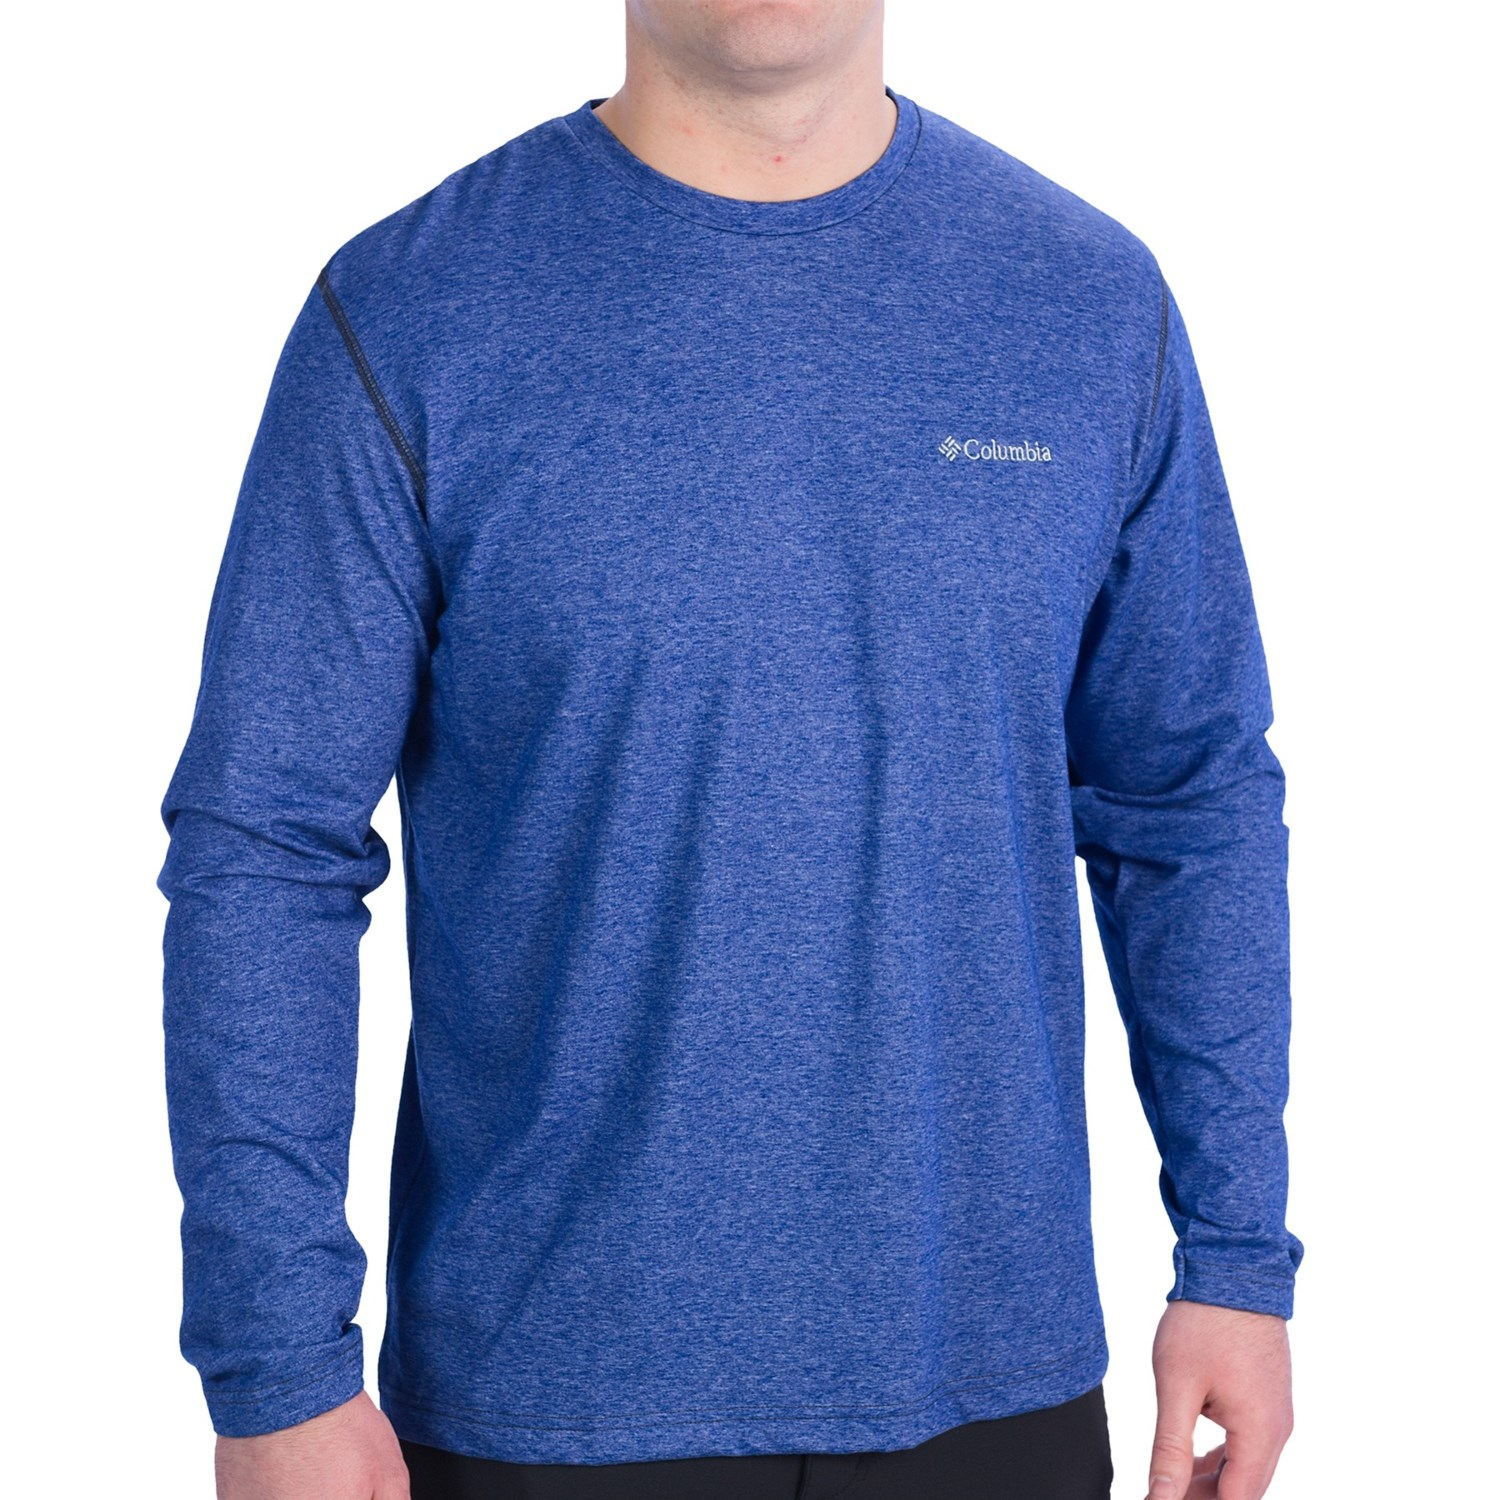 Columbia Sportswear Thistletown Park T Shirt Long Sleeve